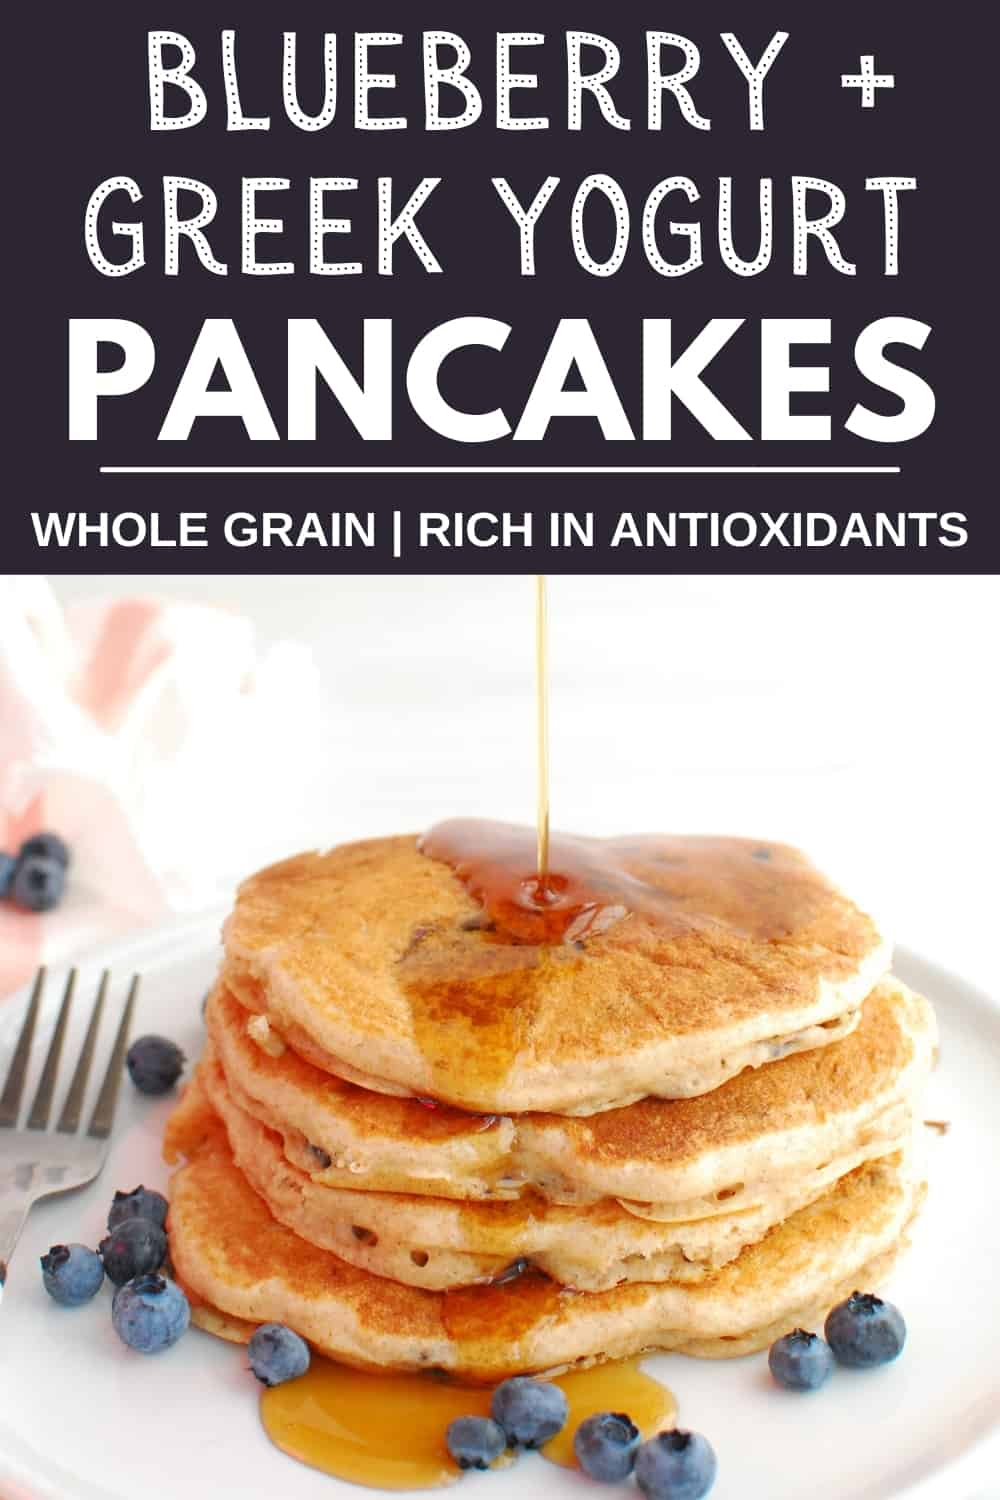 A stack of blueberry yogurt pancakes with syrup being drizzled on top.